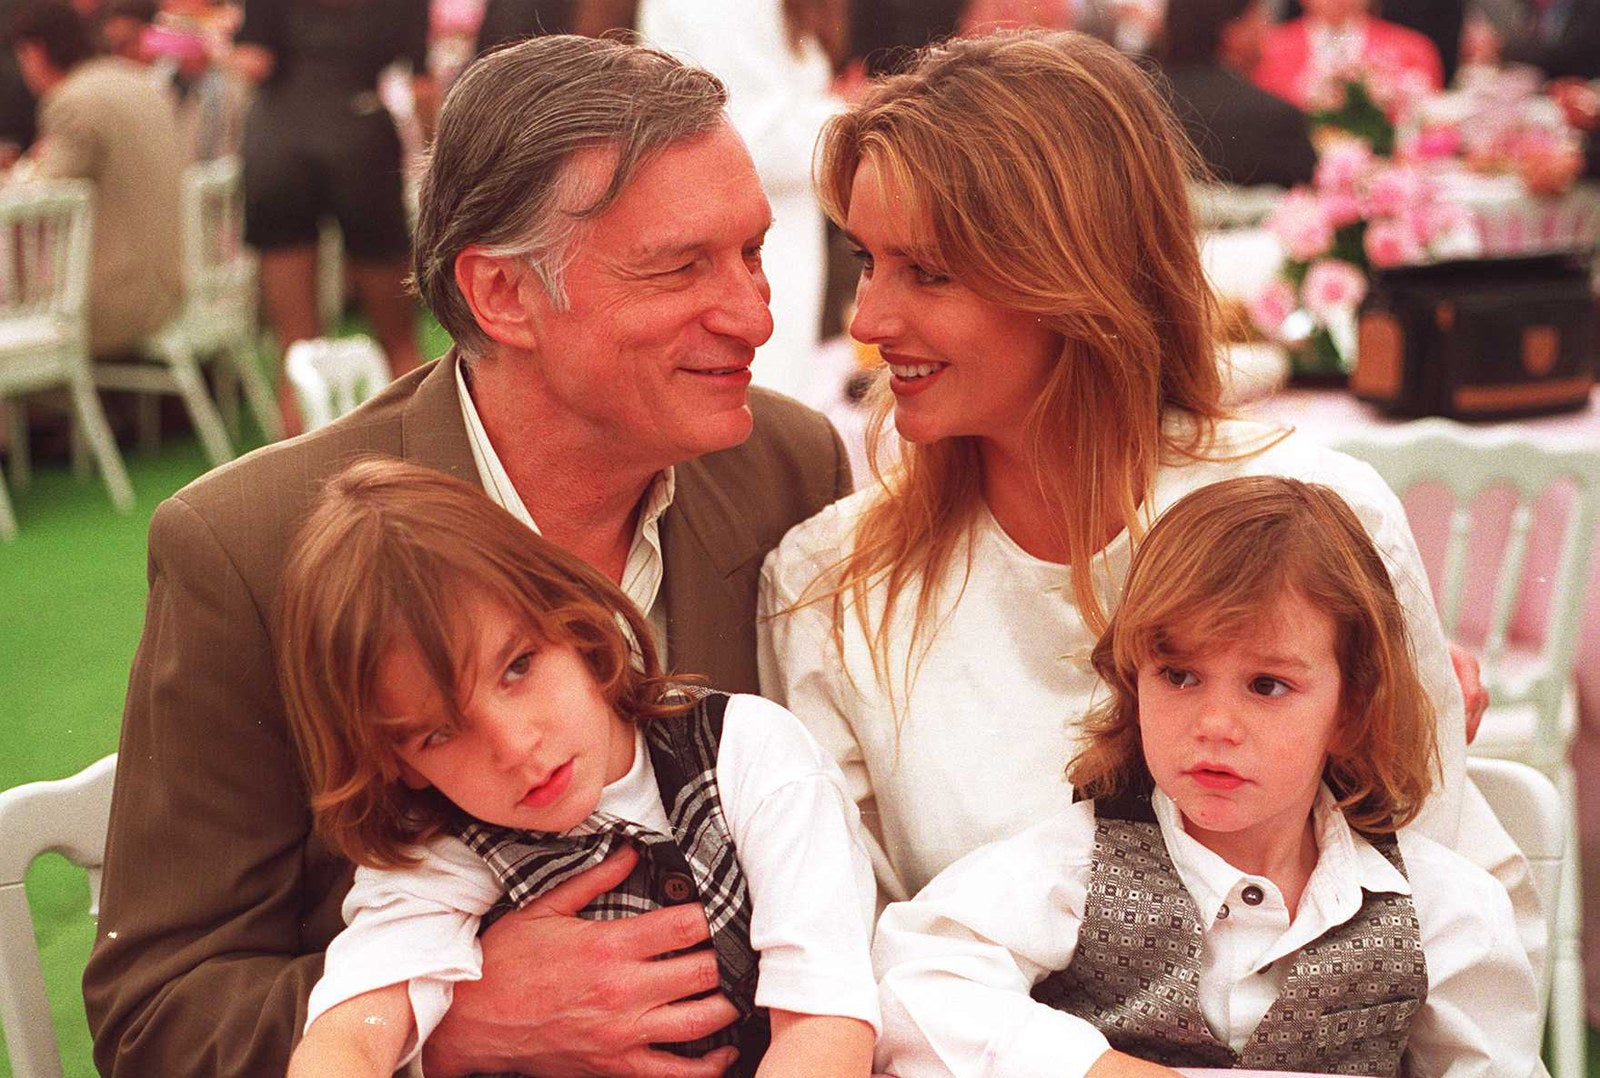 Hefner sits with his wife Kimberley and two children during an event at the Playboy Mansion in April 1994.